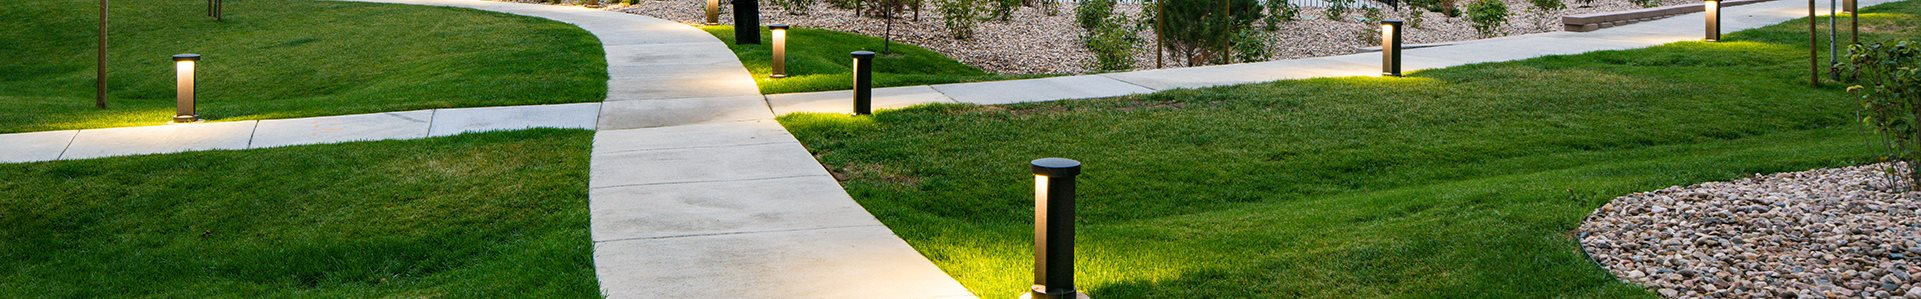 Lite grass pathway Apartments for rent in Lafayette CO Copper Stone Apts